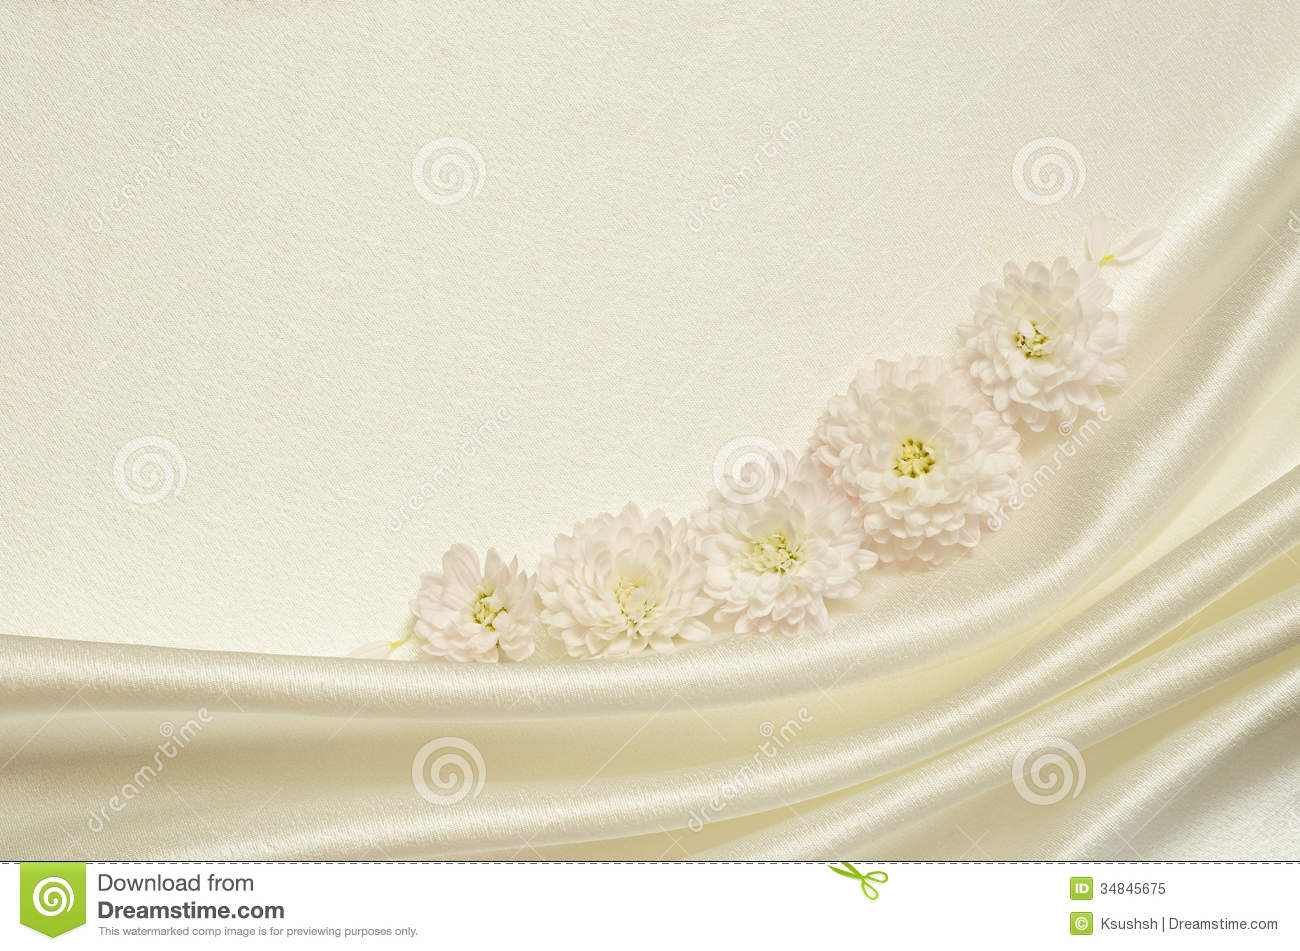 White Draped Fabric With Flowers Royalty Free Stock Photo